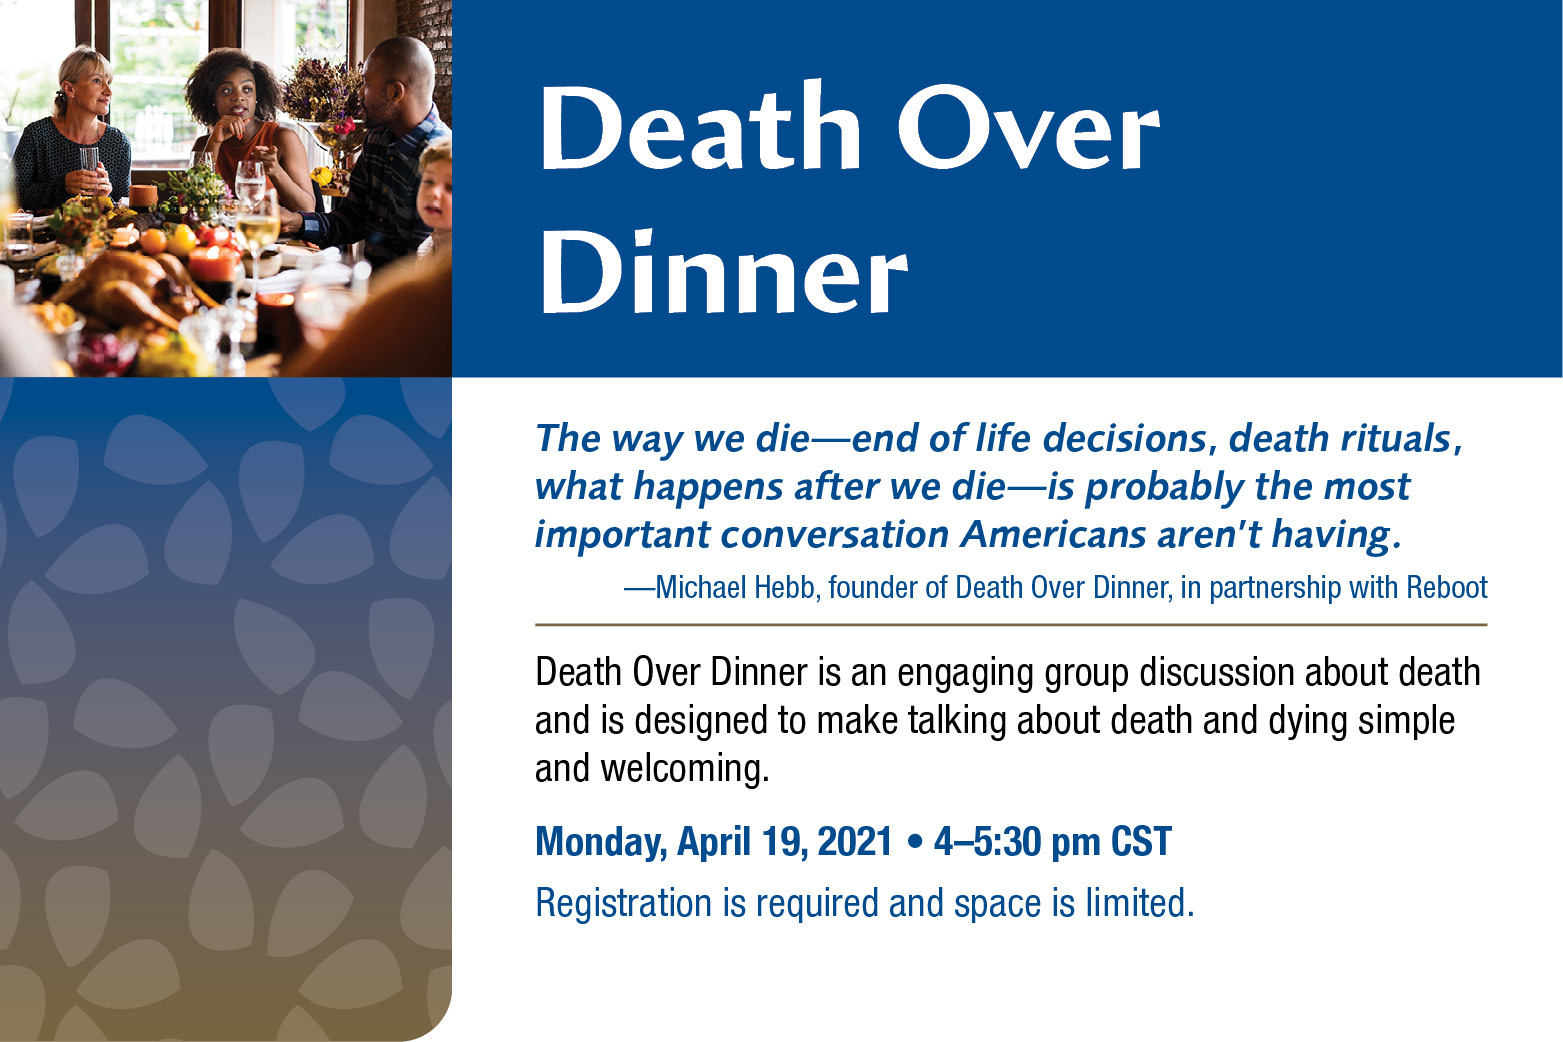 Death Over Dinner event